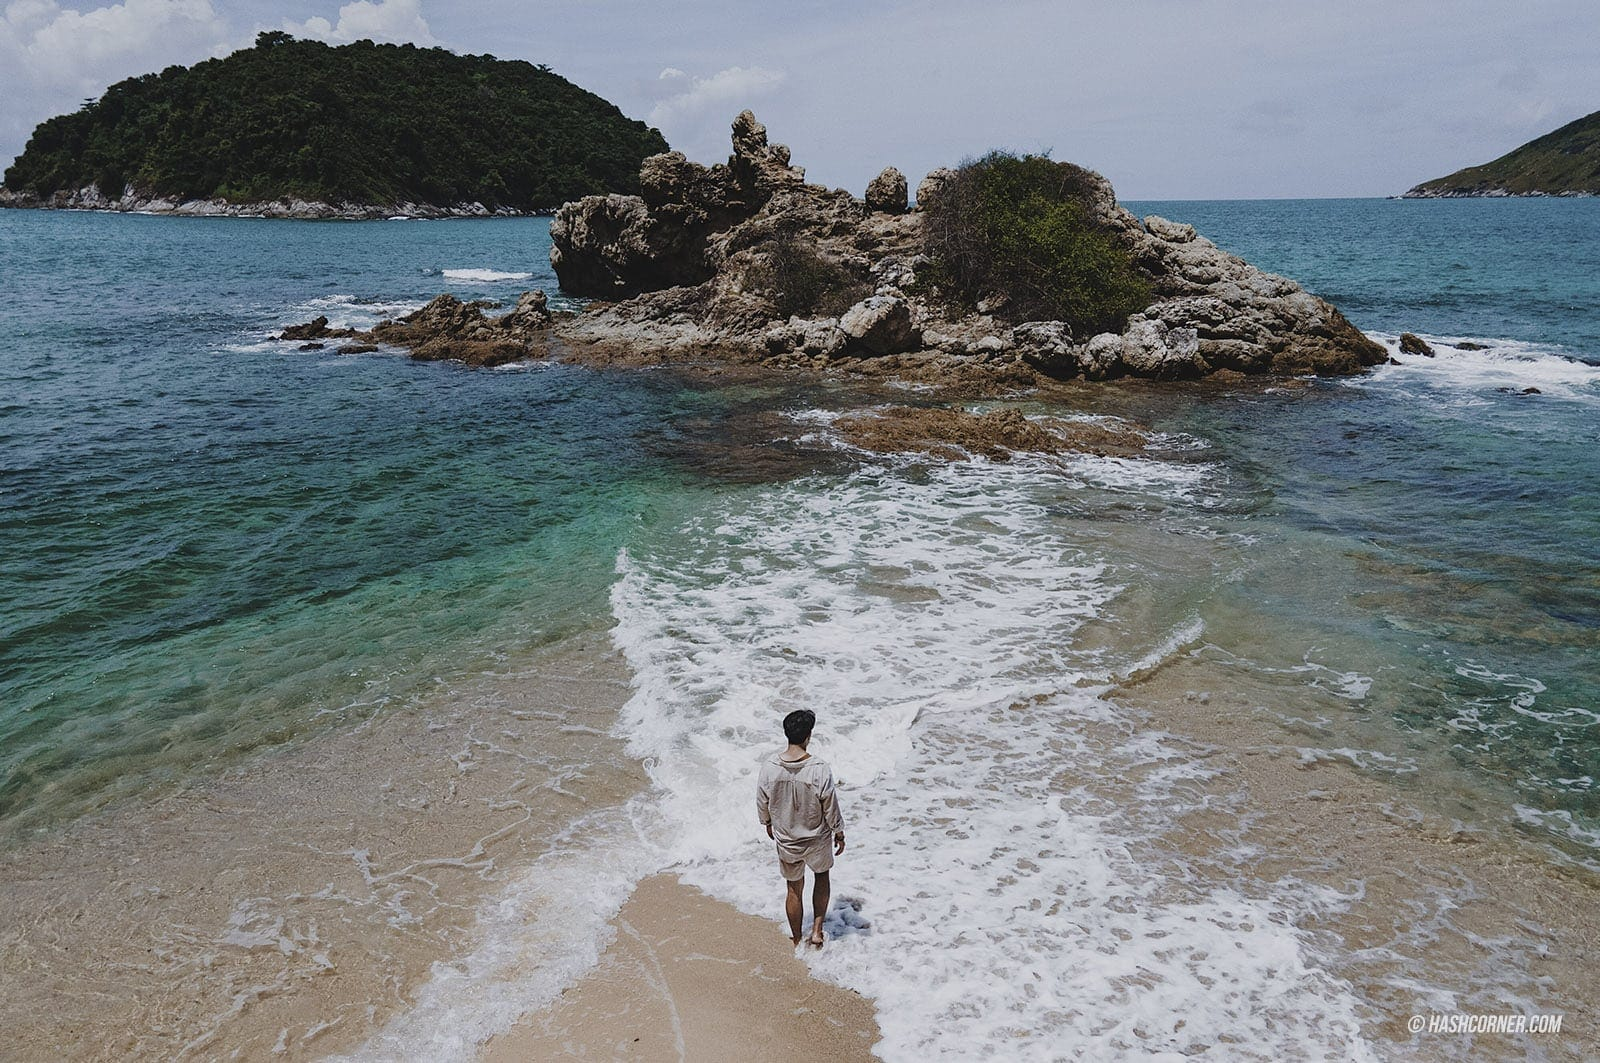 Phuket: 14 Attractions to Fulfill a Craving for the Ocean